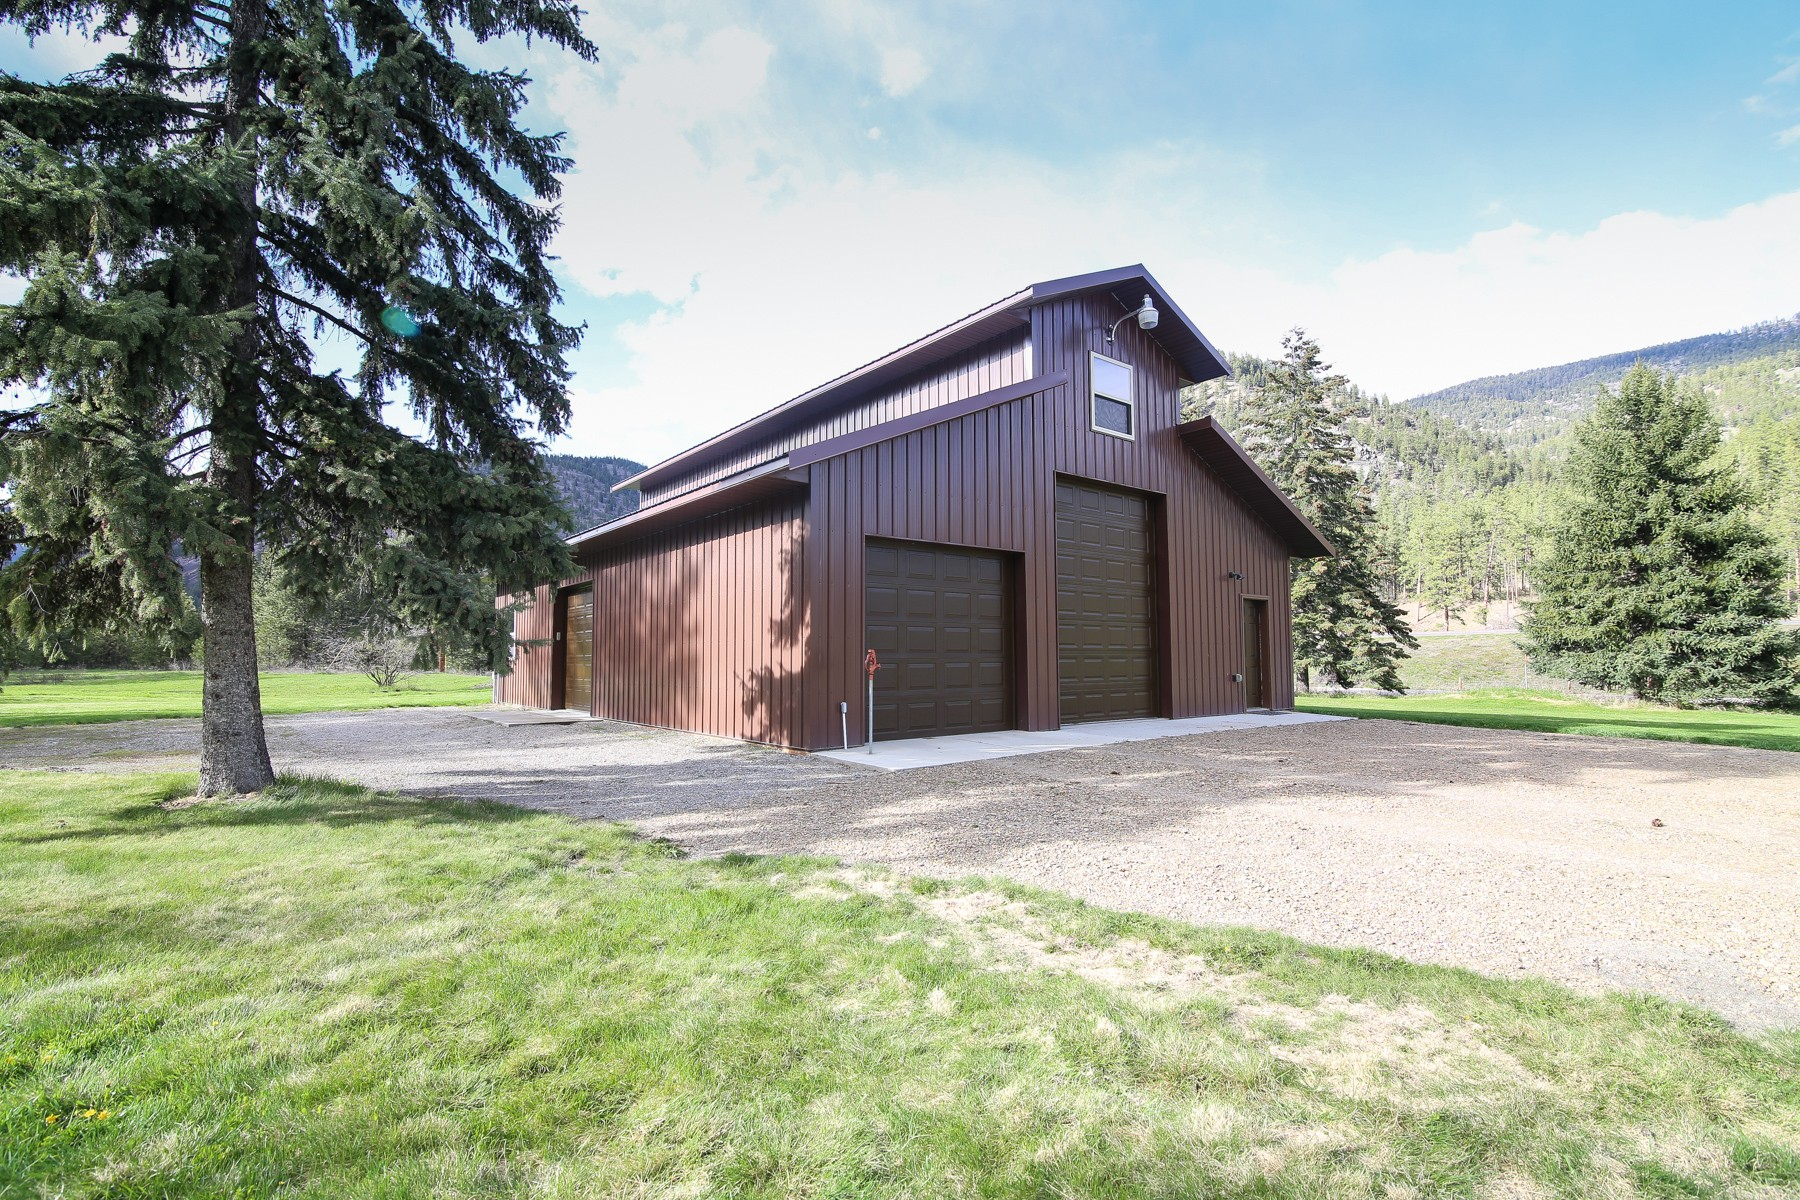 Additional photo for property listing at 643 S Frontage W, Alberton, MT 59820 643 S Frontage   W Alberton, Montana 59820 United States